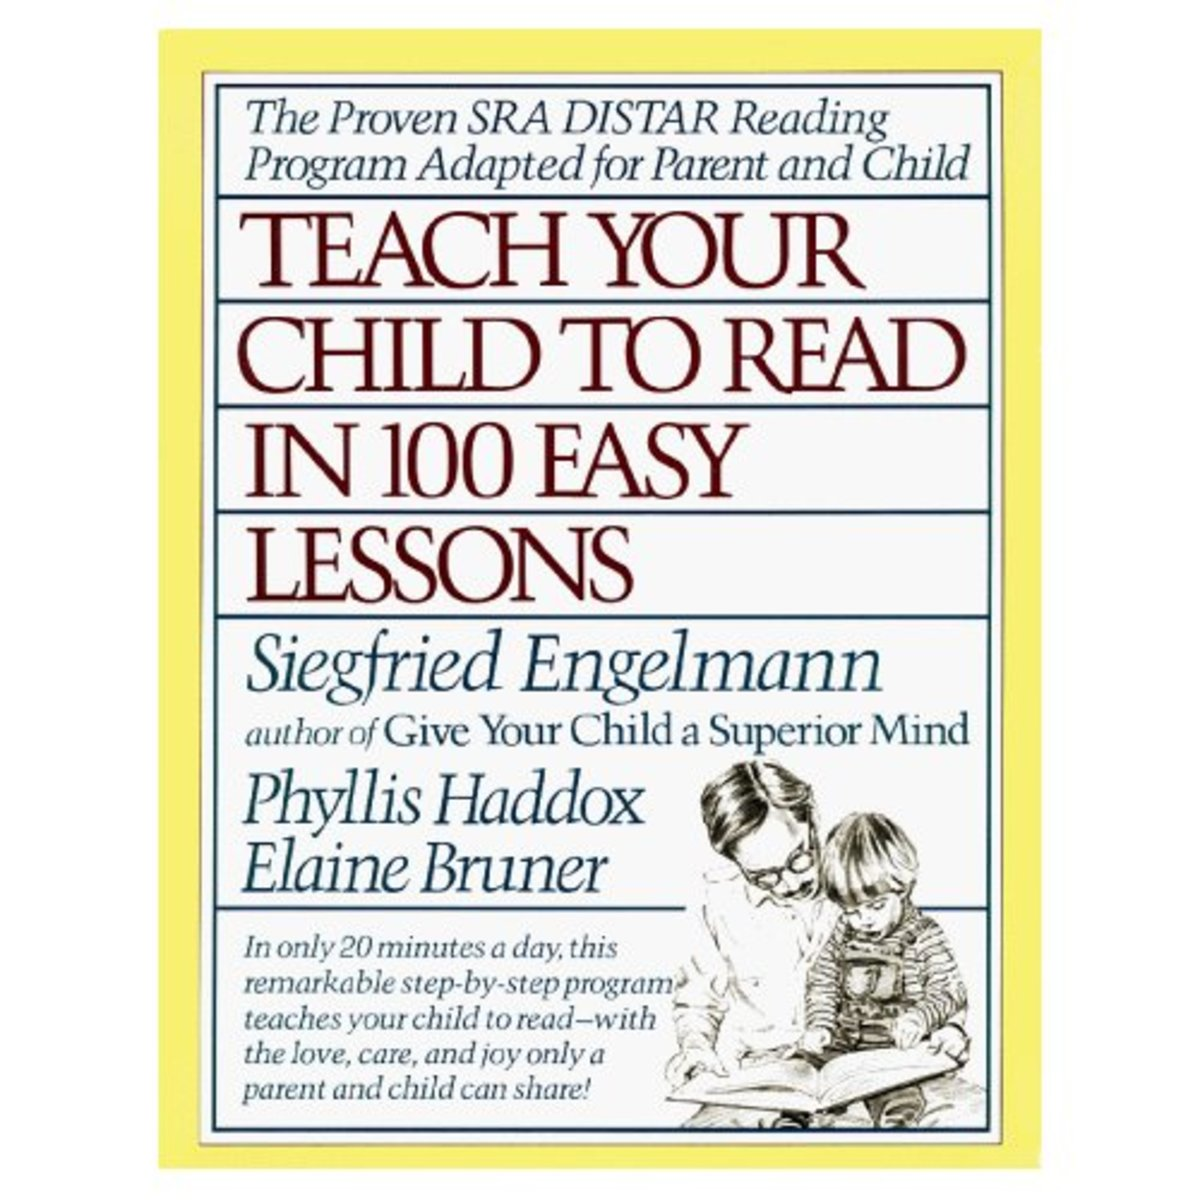 Teach Your Child to Read in 100 Easy Lessons book cover